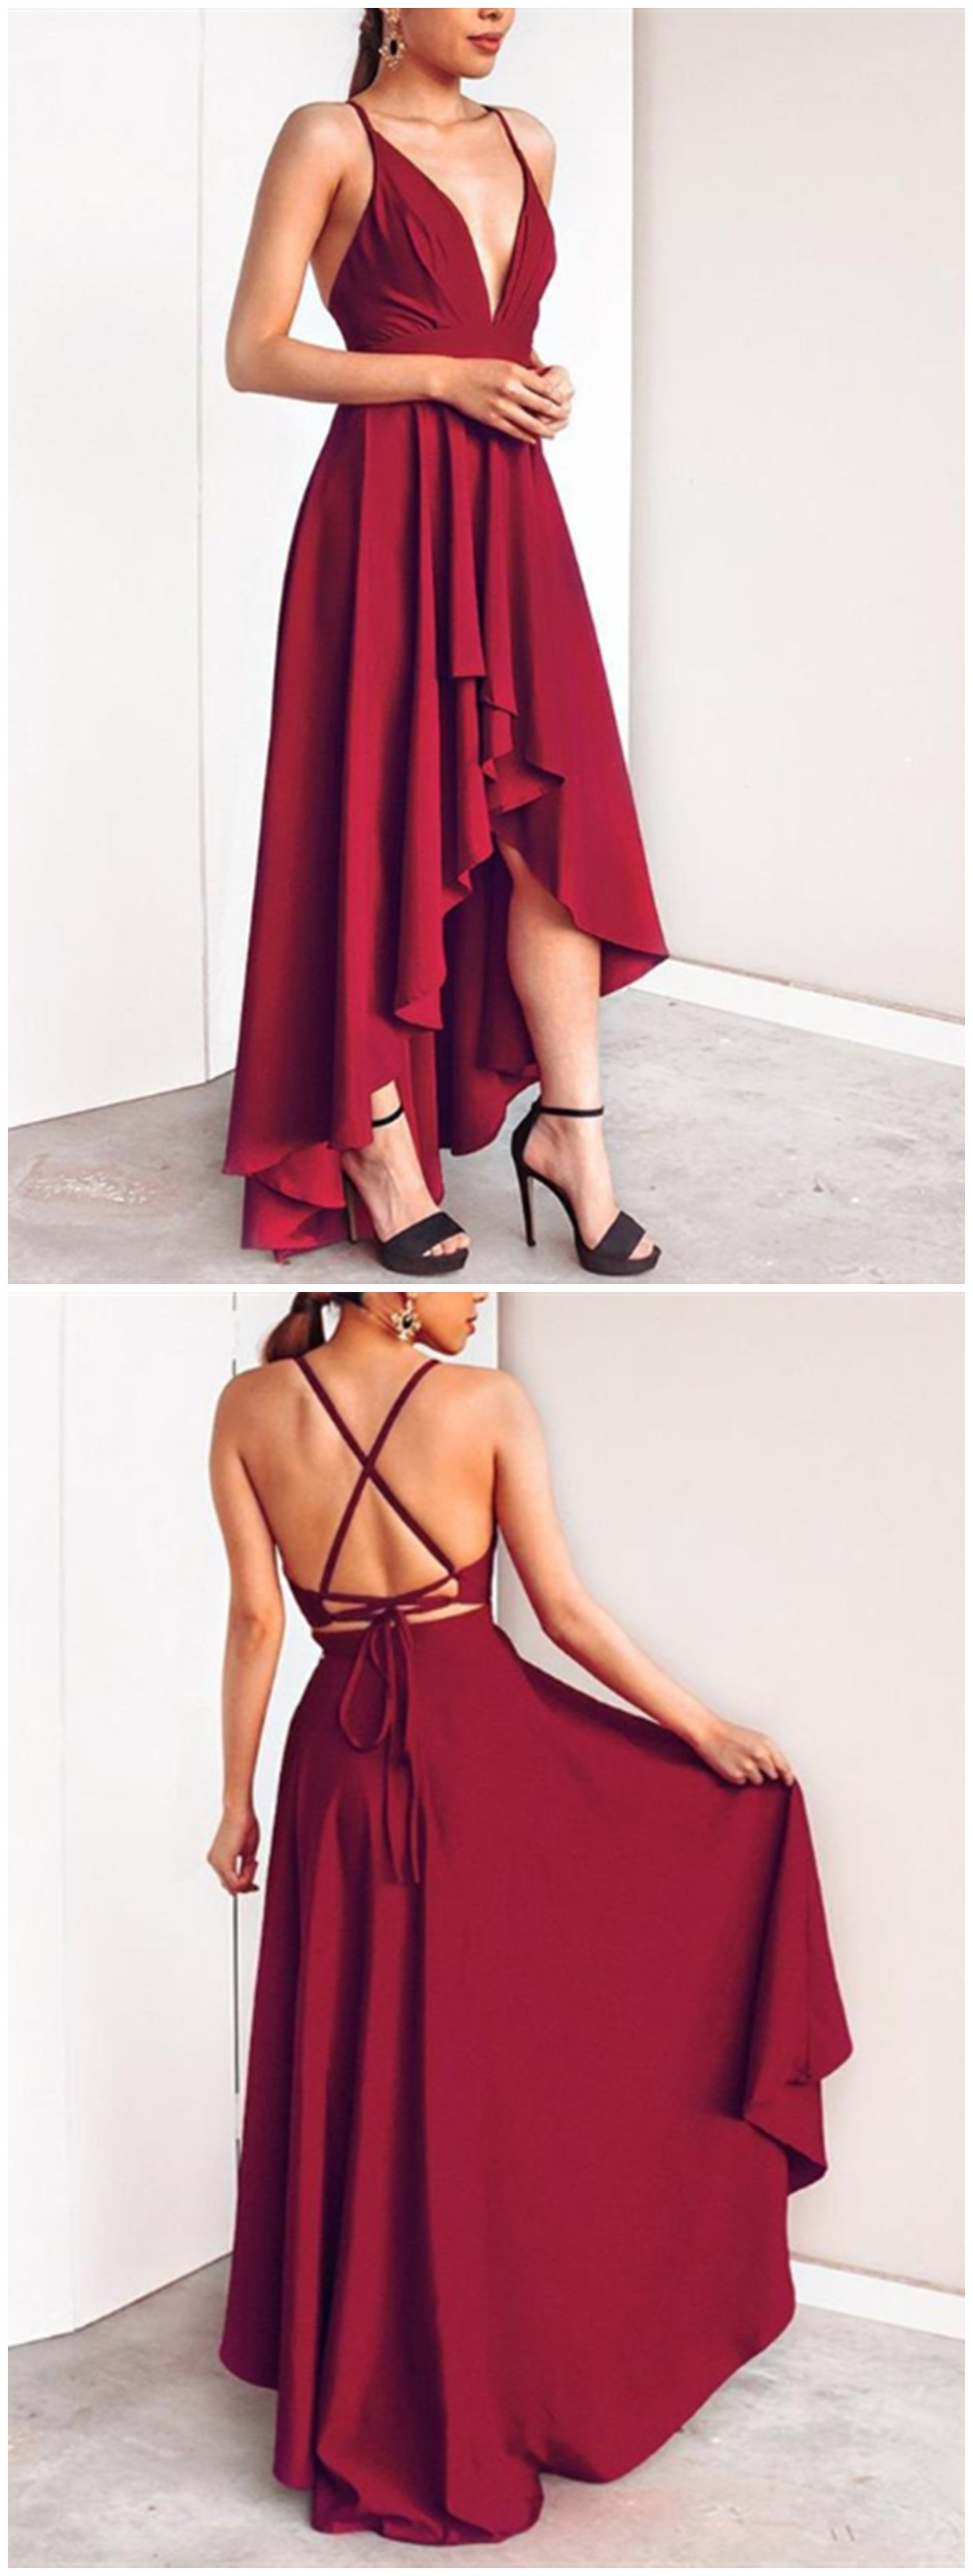 Outfit Stylevore vestido elegantes verano 2019, backless dress, cocktail dress, evening gown, pa ...